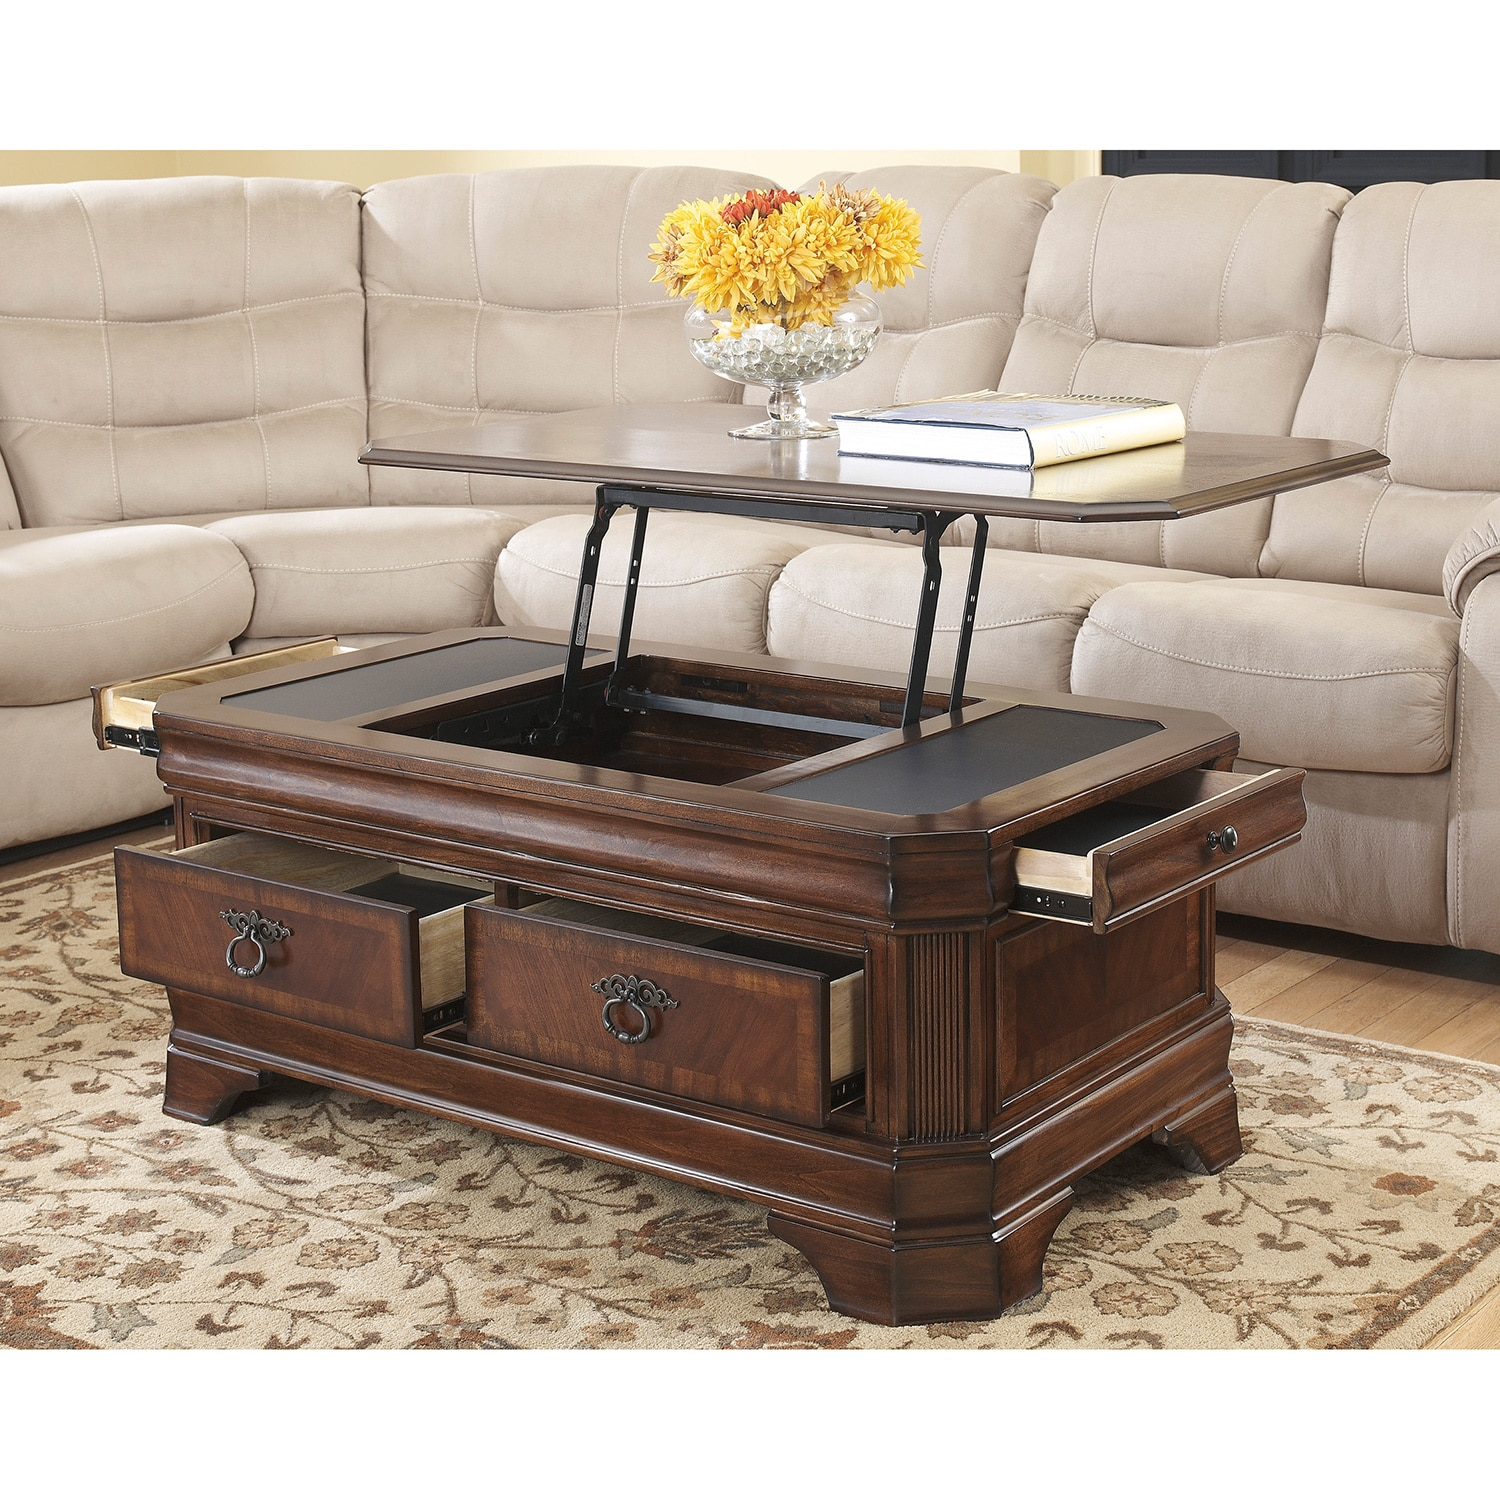 Signature Design By Ashley Hamlyn Lift Top Tail Table Free Shipping Today 9444833